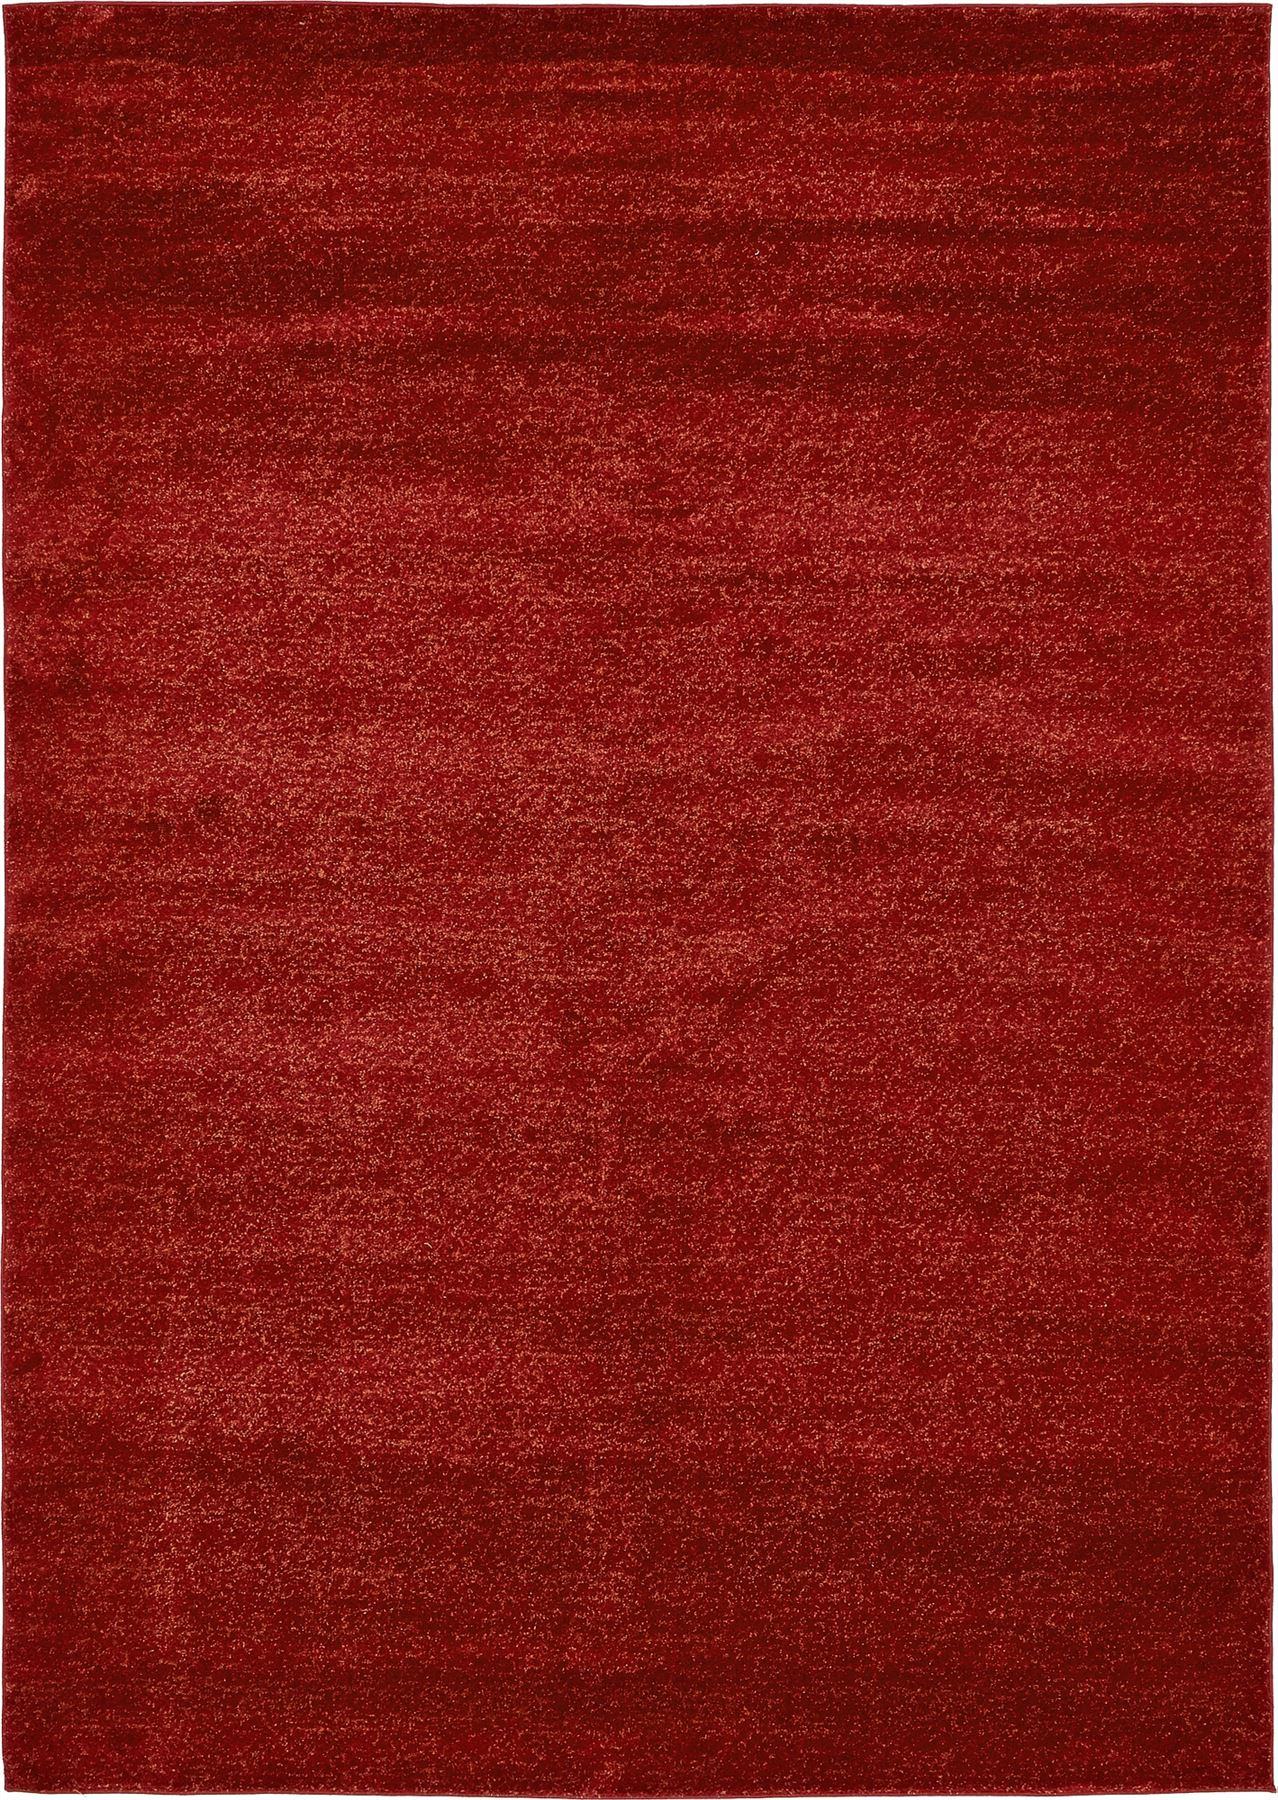 Contemporary Area Rug Solid Plain Soft Large Warm Carpet